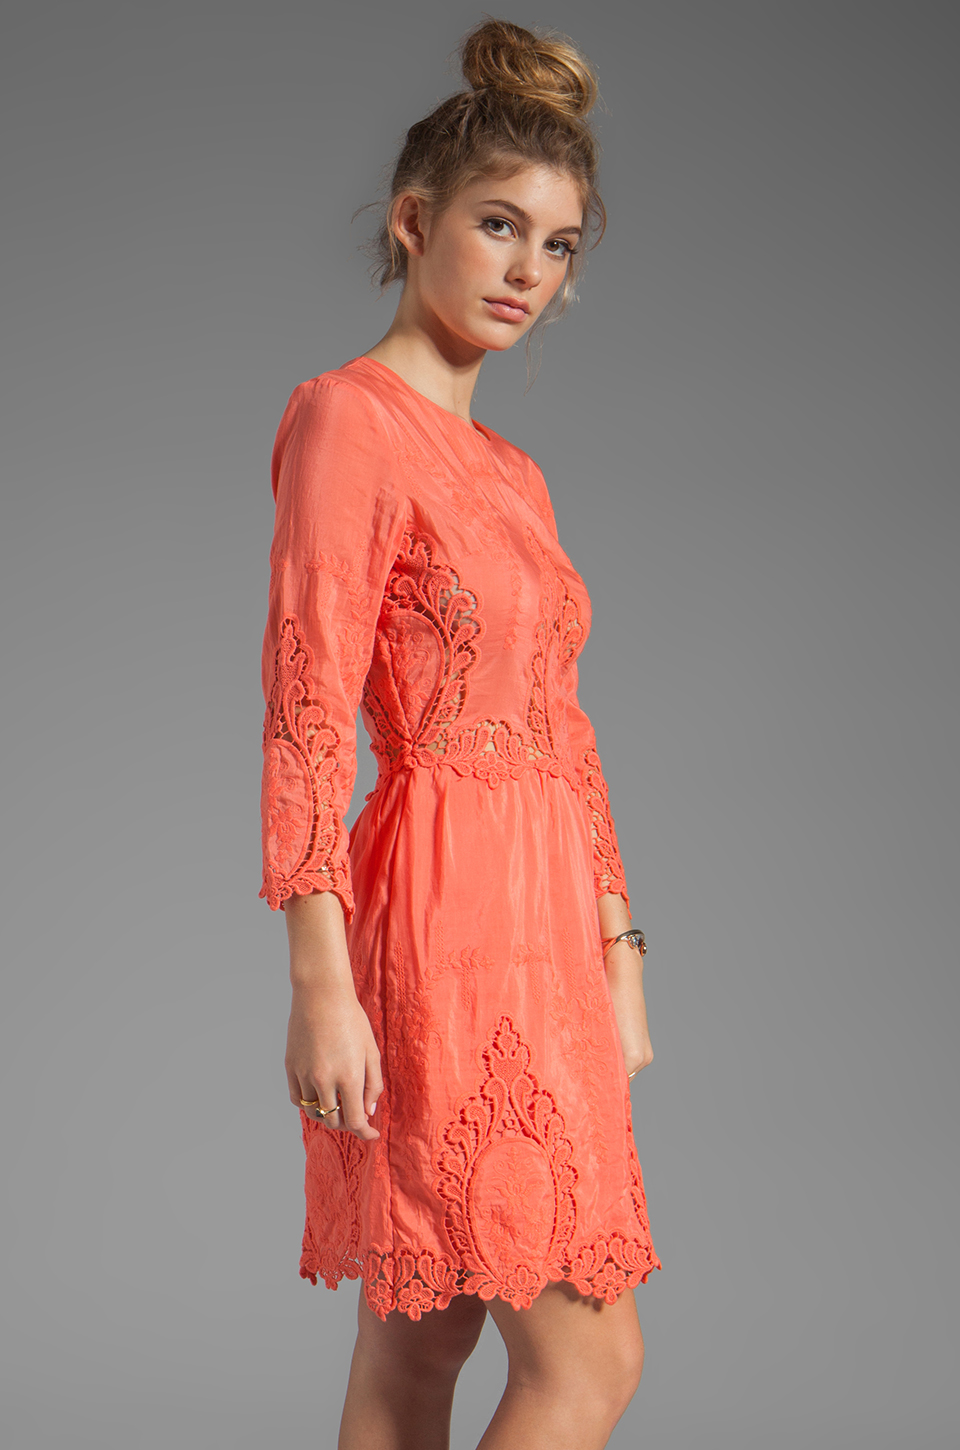 Dolce Vita Valentina Petticoat Embroidery Long Sleeve Dress in Melon